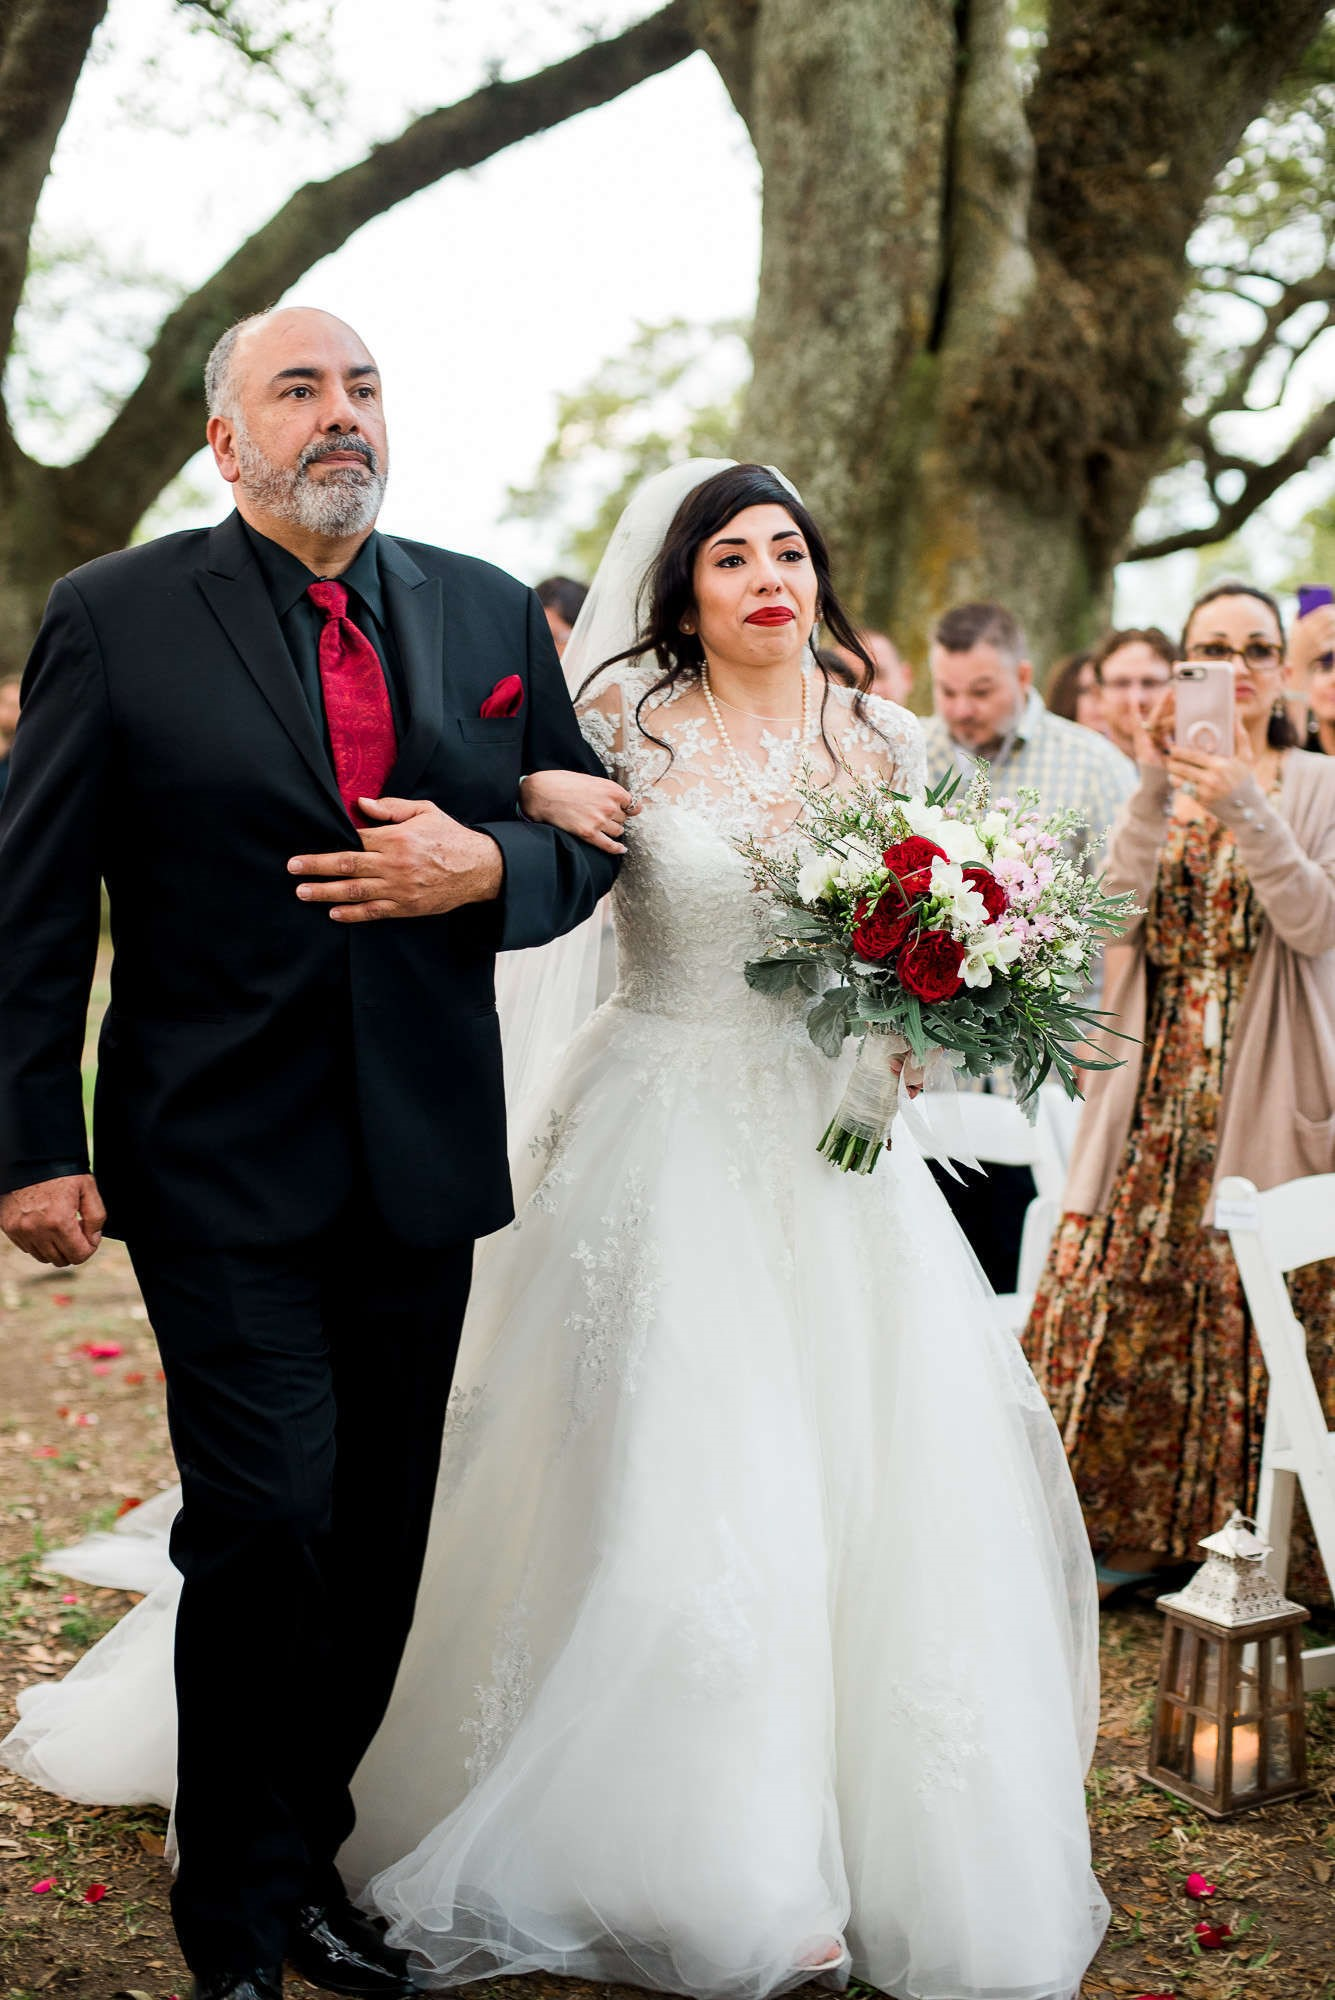 Wedding at Stella Plantation in New Orleans, La